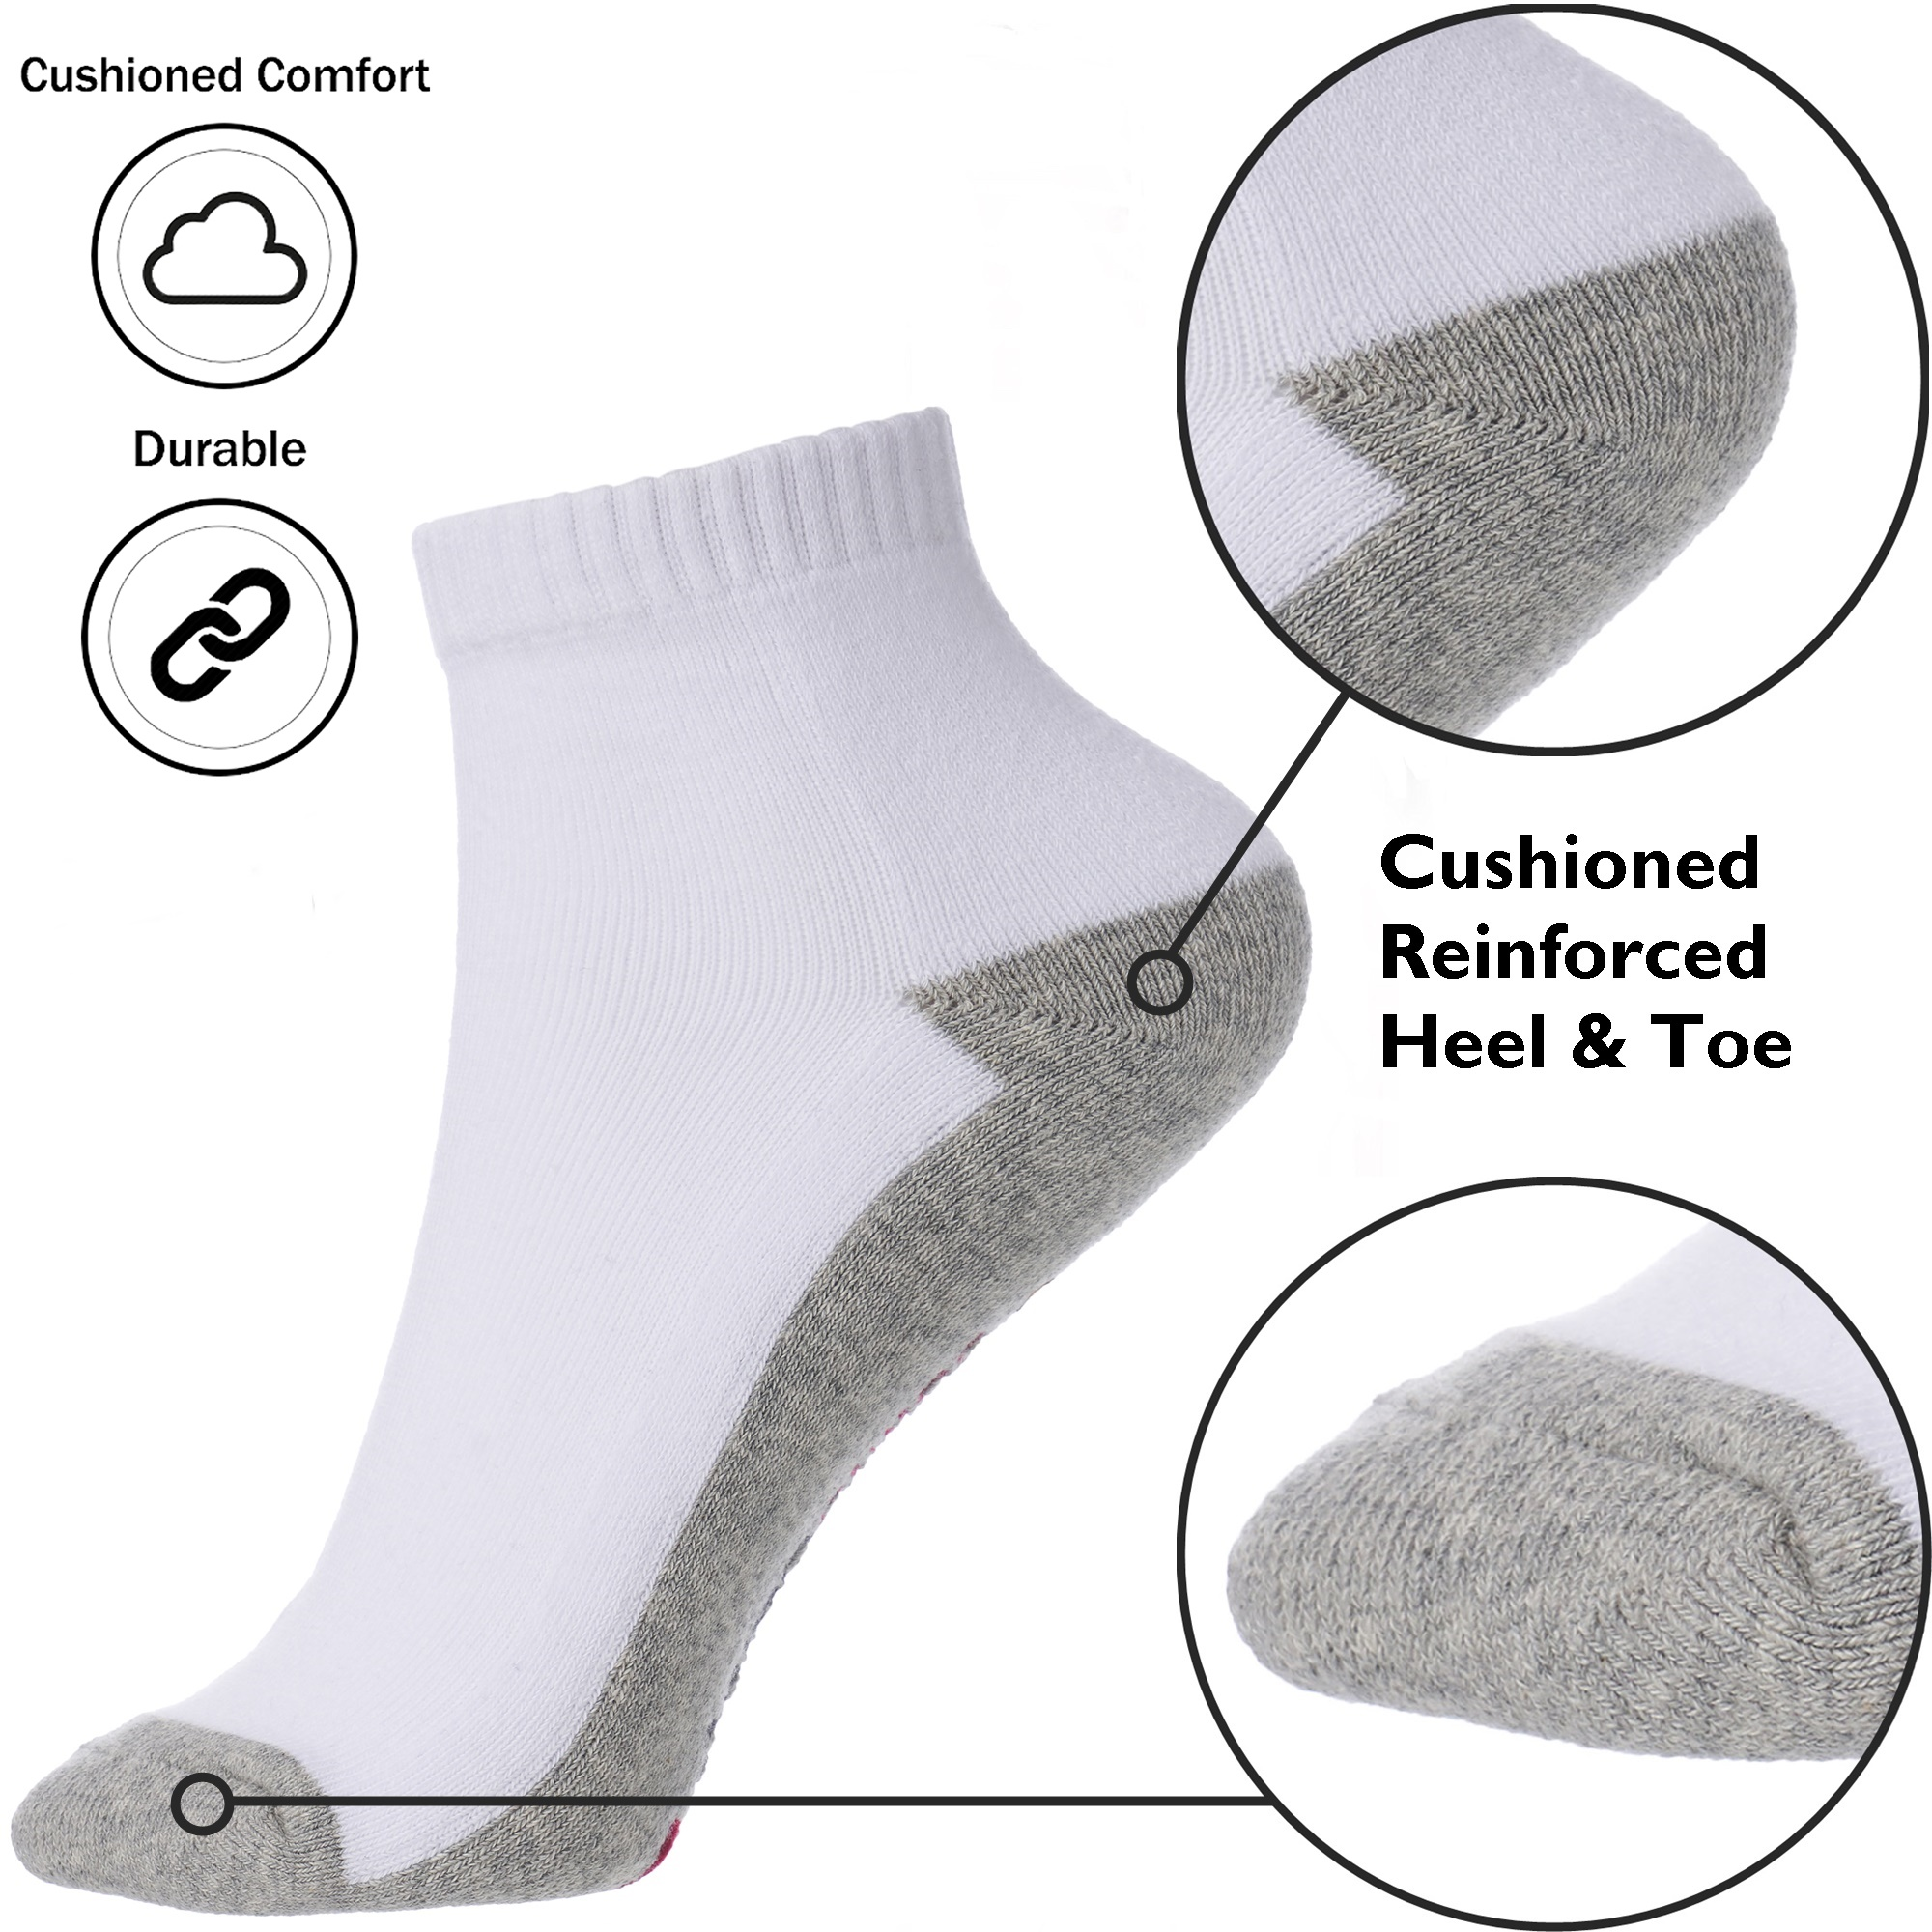 Alpine-Swiss-Mens-8-Pack-Ankle-Socks-Low-Cut-Cotton-Athletic-Sock-Shoe-Size-6-12 thumbnail 19